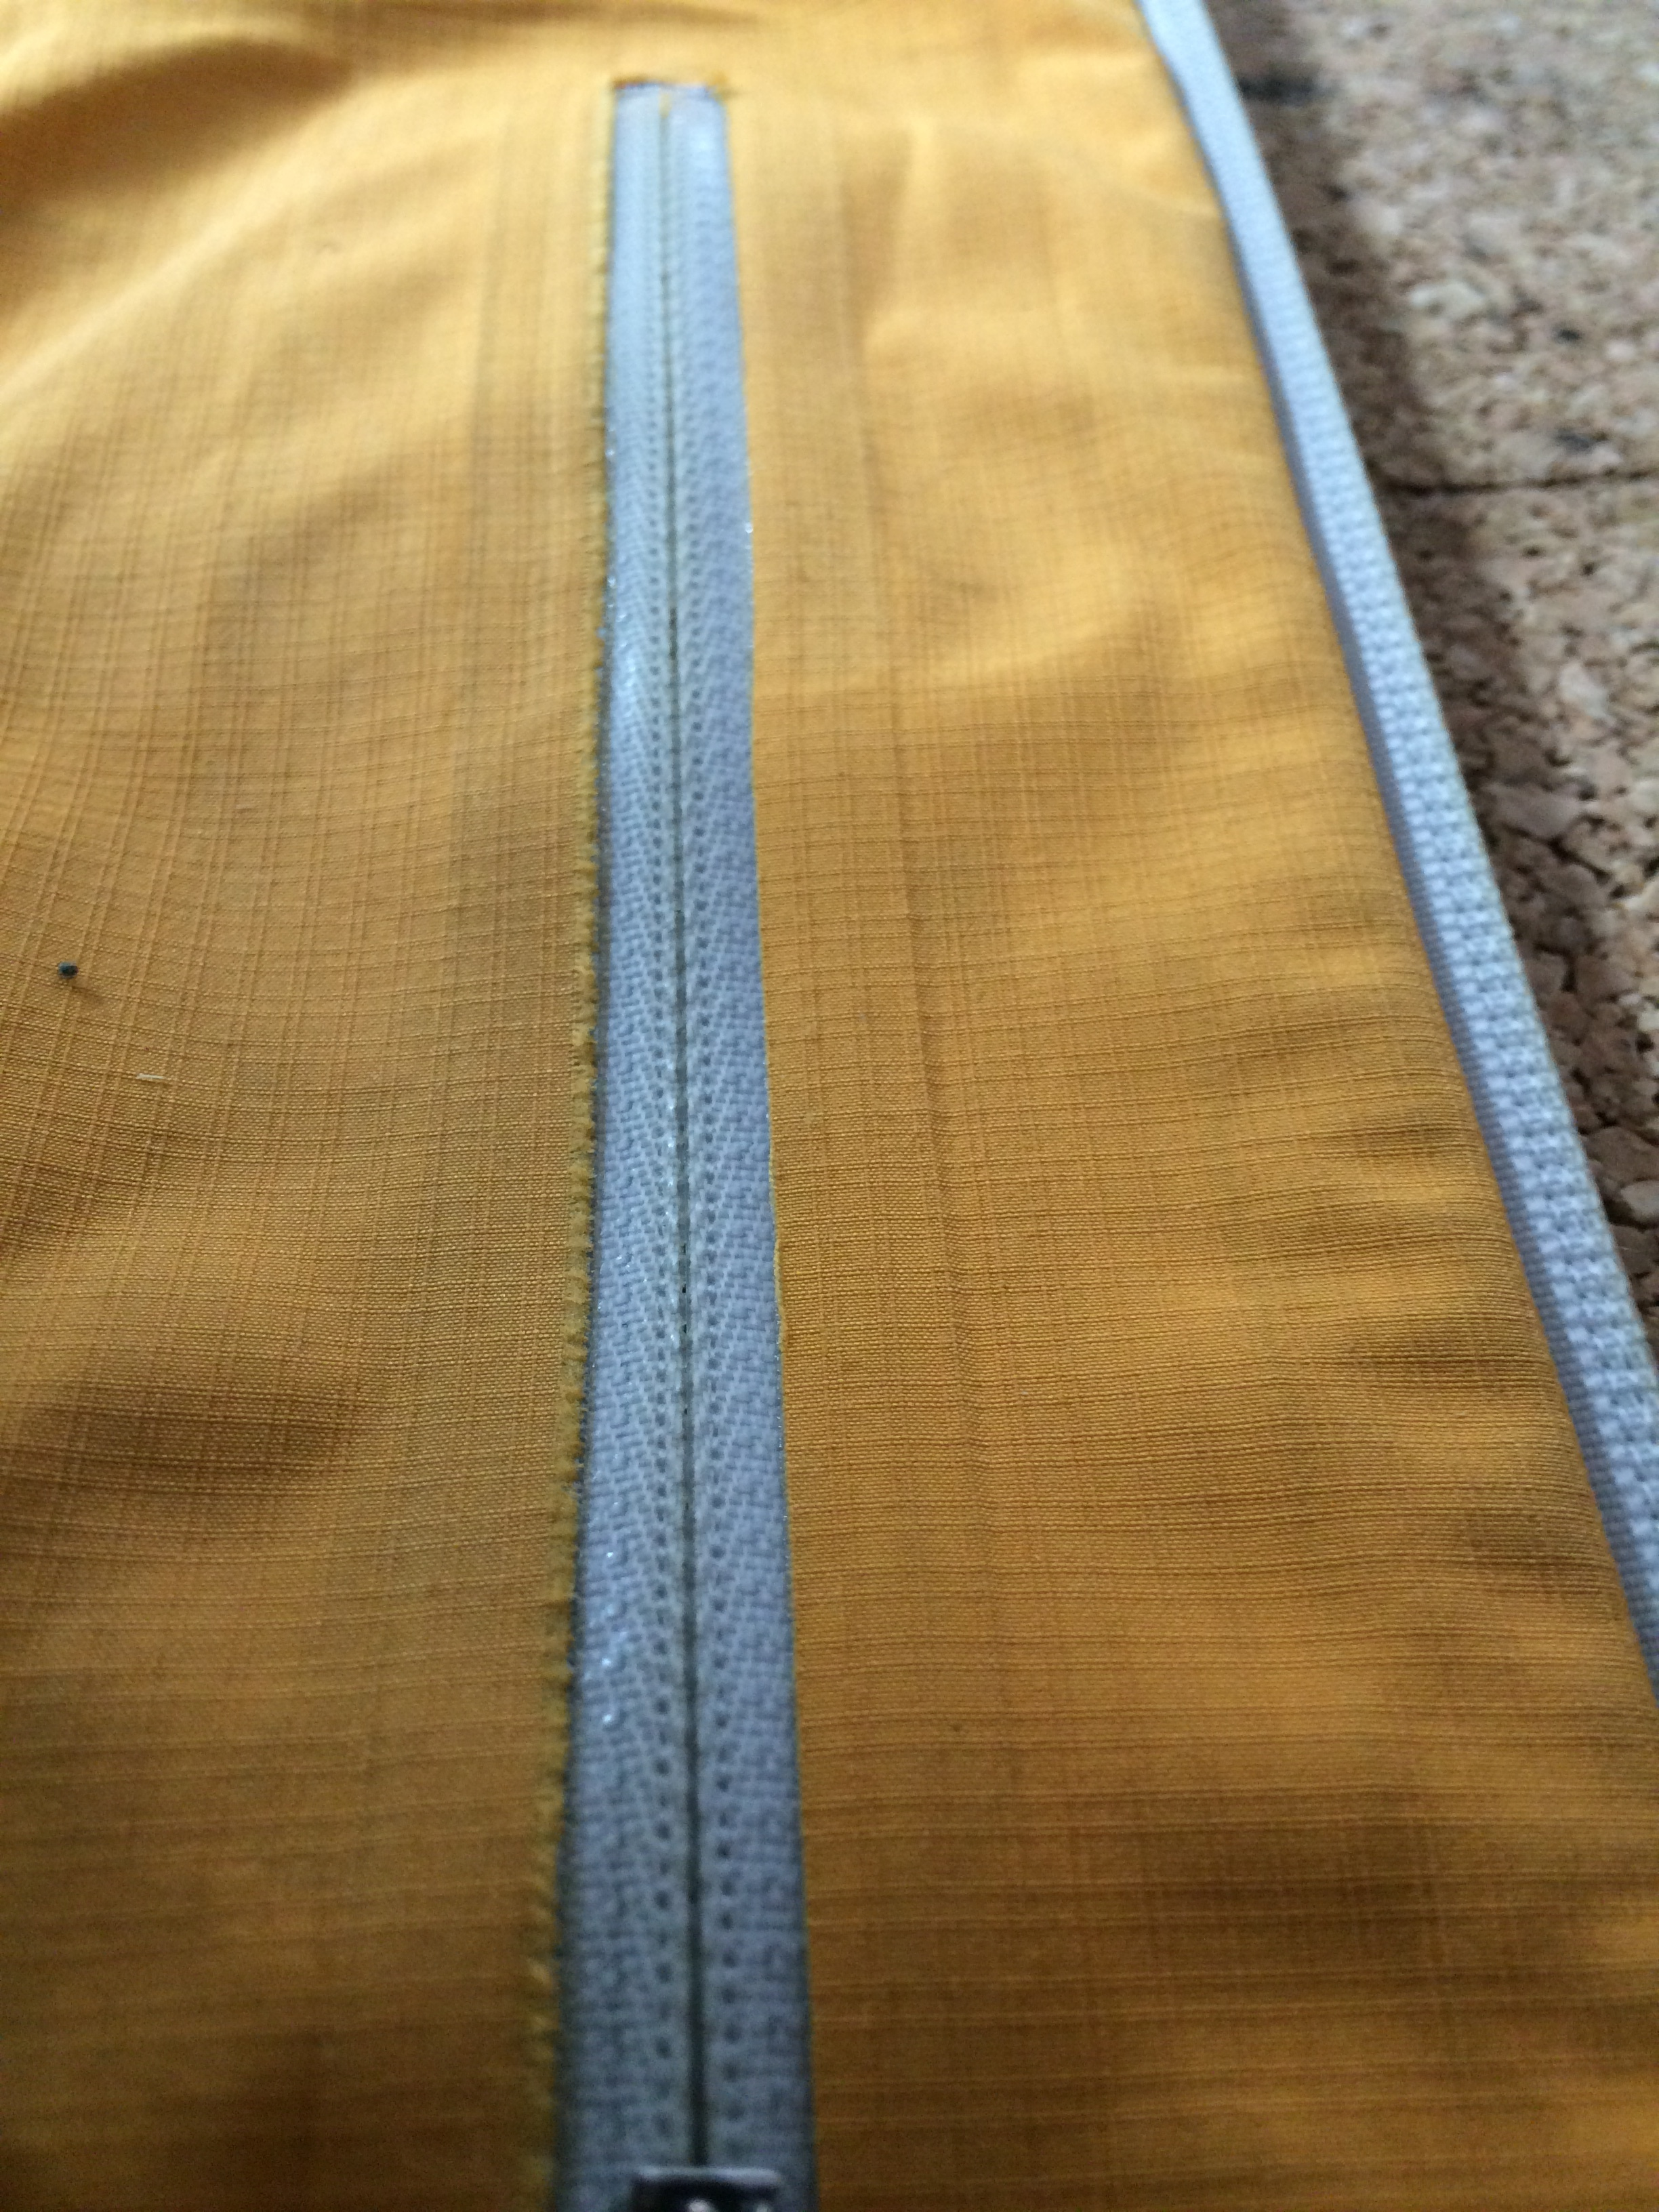 Welded zipper repair